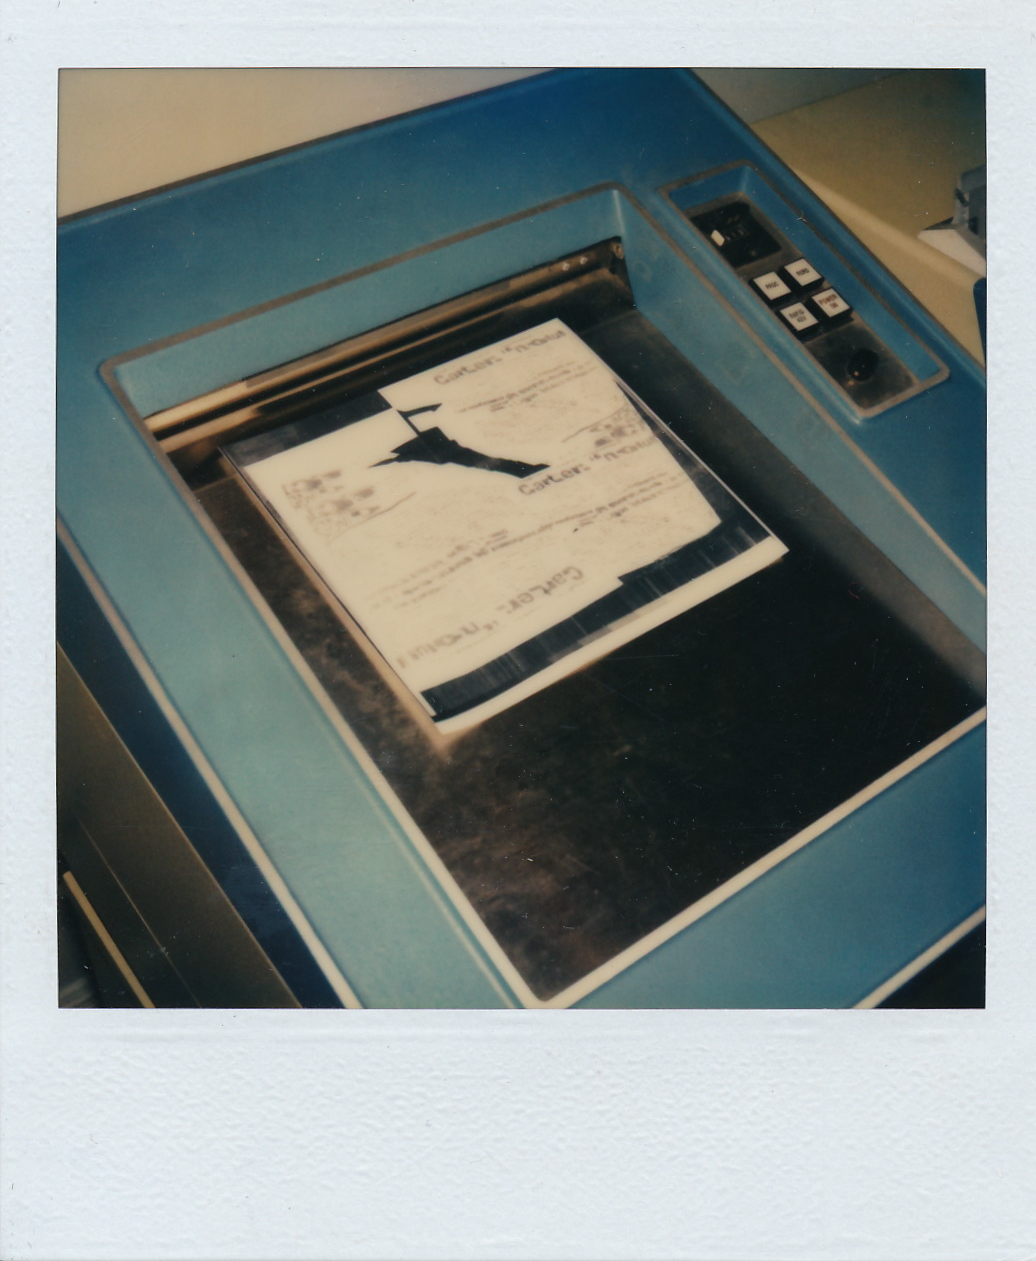 Machine photolaser  -  Document Polaroid original.  /   © Herménégilde Chiasson 1982